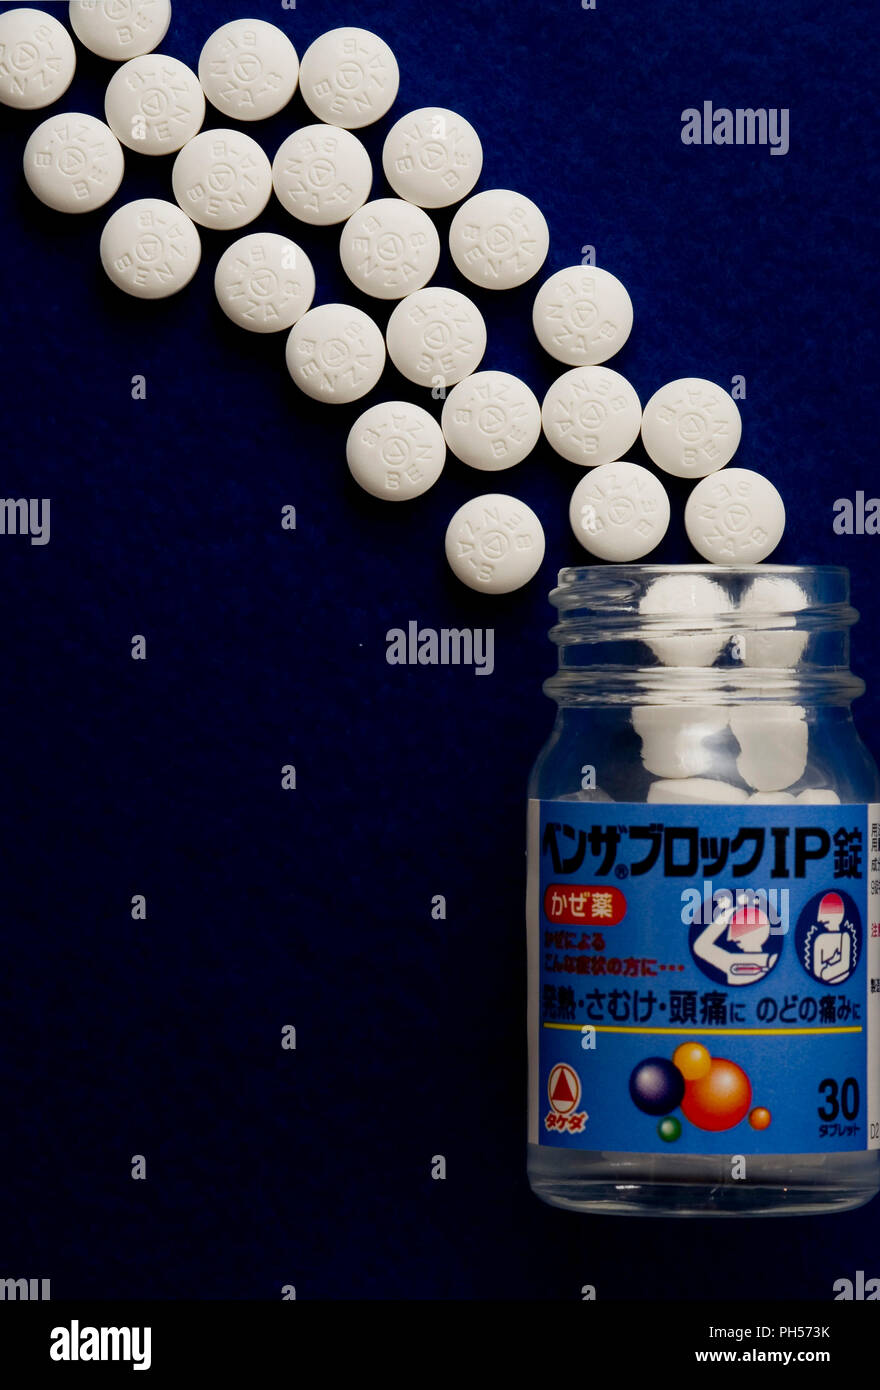 Pills for flu-like symptoms marketed by Takeda Pharmeceutical Co., Ltd., are arranged for a photo in Tokyo on Tuesday, July 31, 2007. Photographer:Rob - Stock Image